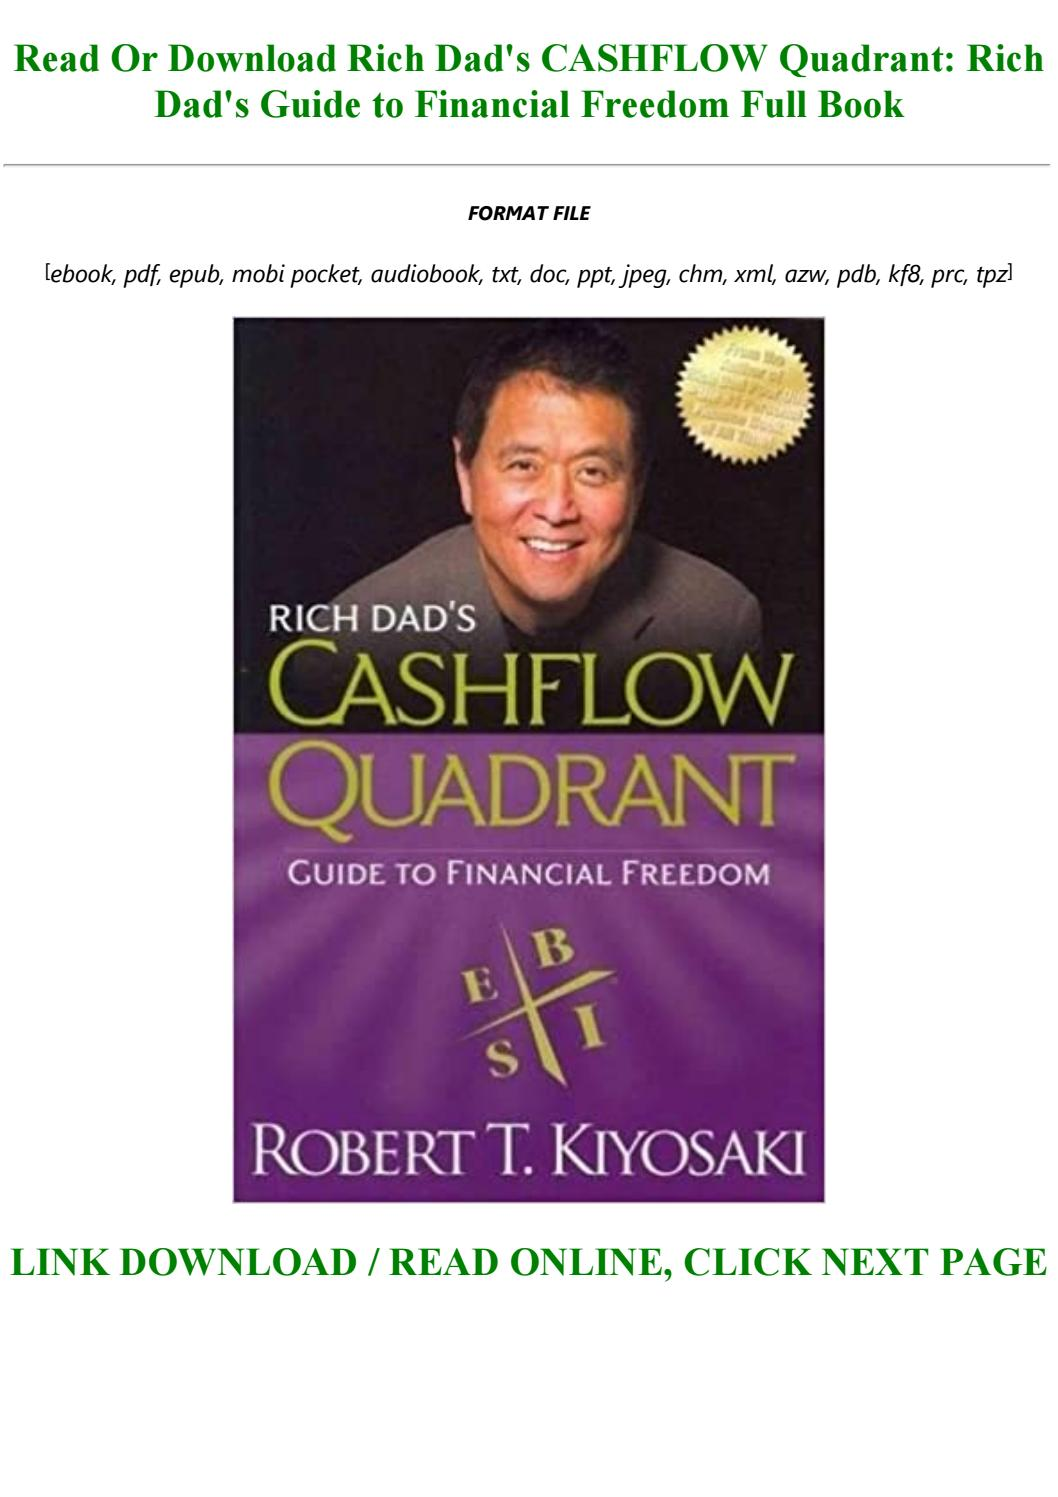 Cashflow Quadrant Pdf Download